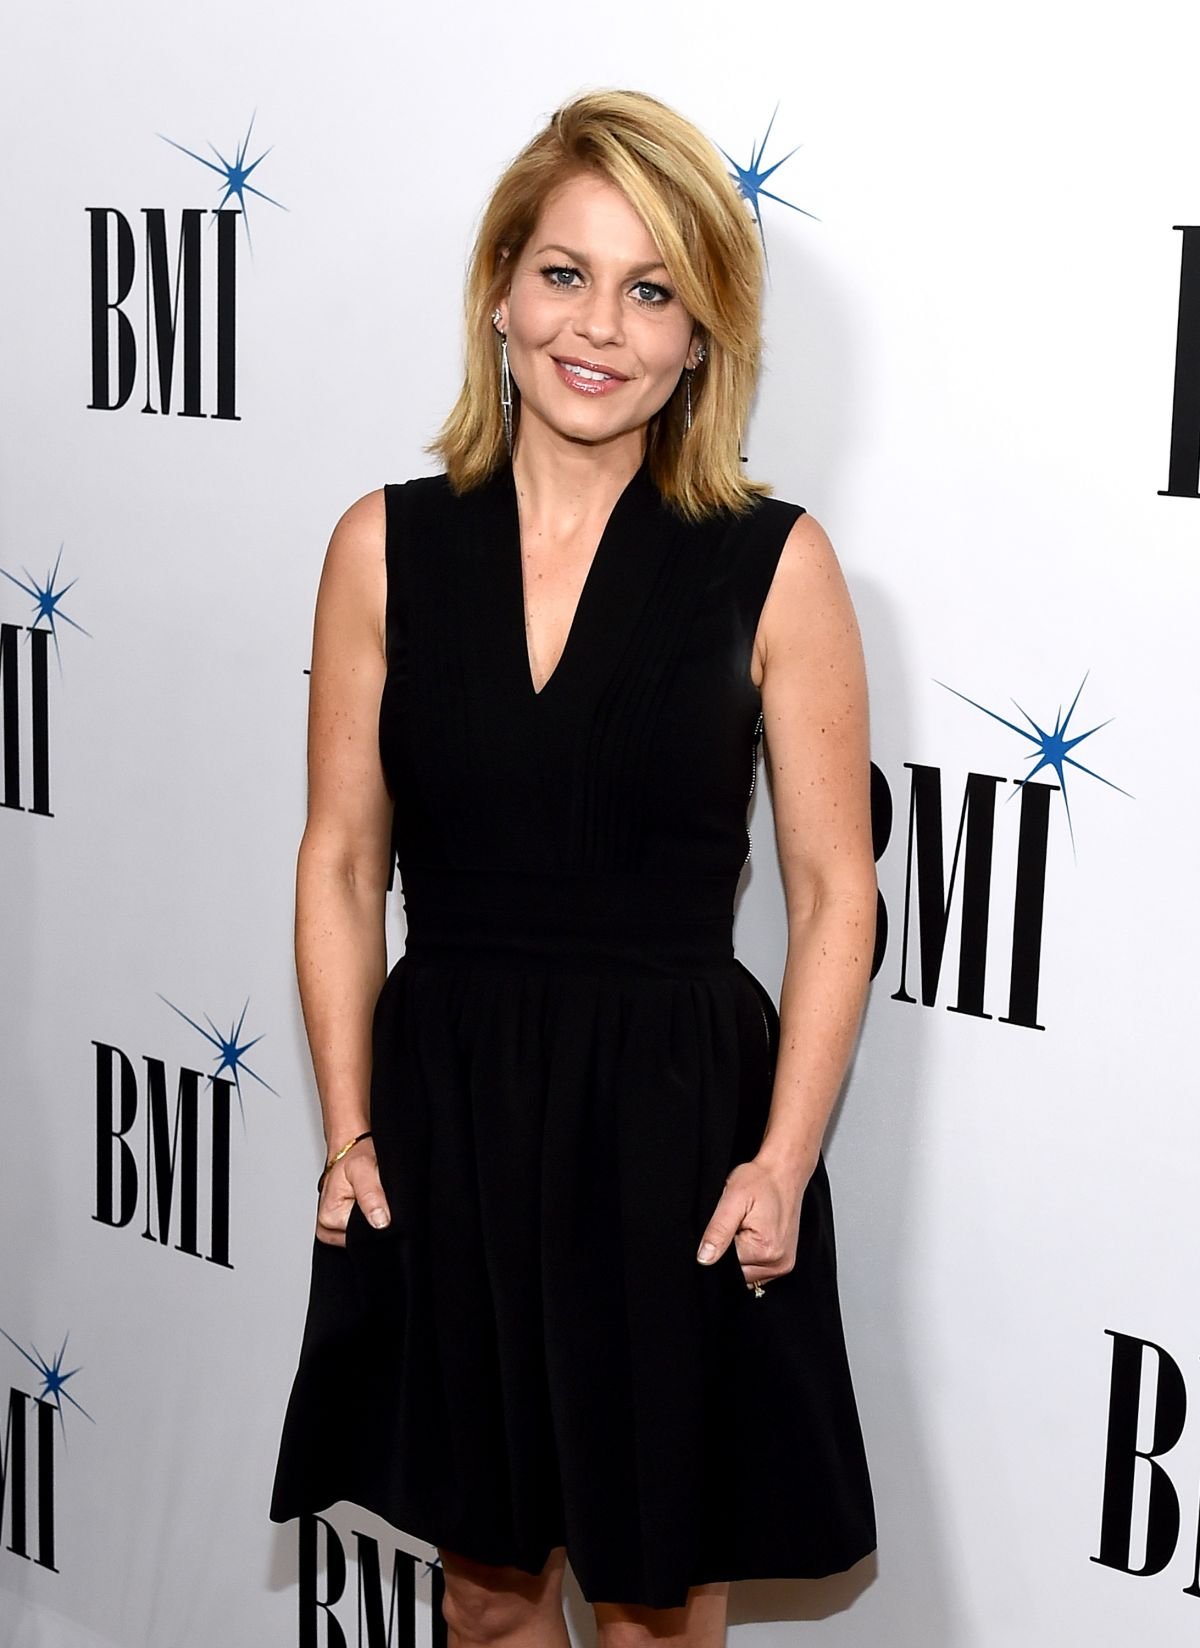 CANDACE CAMERON BURE at 2017 BMI Film, TV & Visual Media Awards in Beverly Hills 05/10/2017